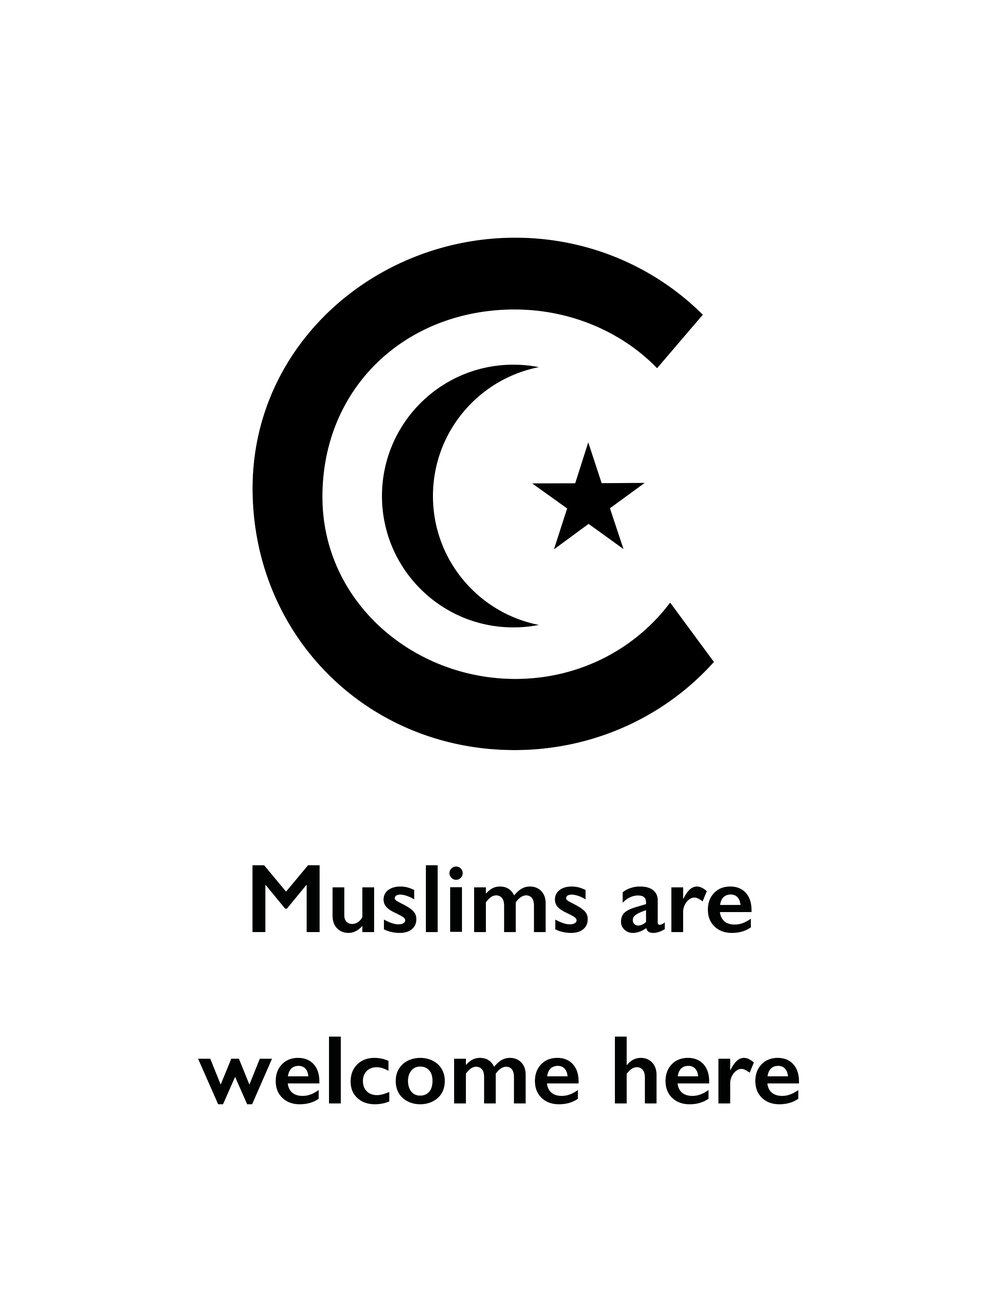 Muslims are welcome here-1.jpg